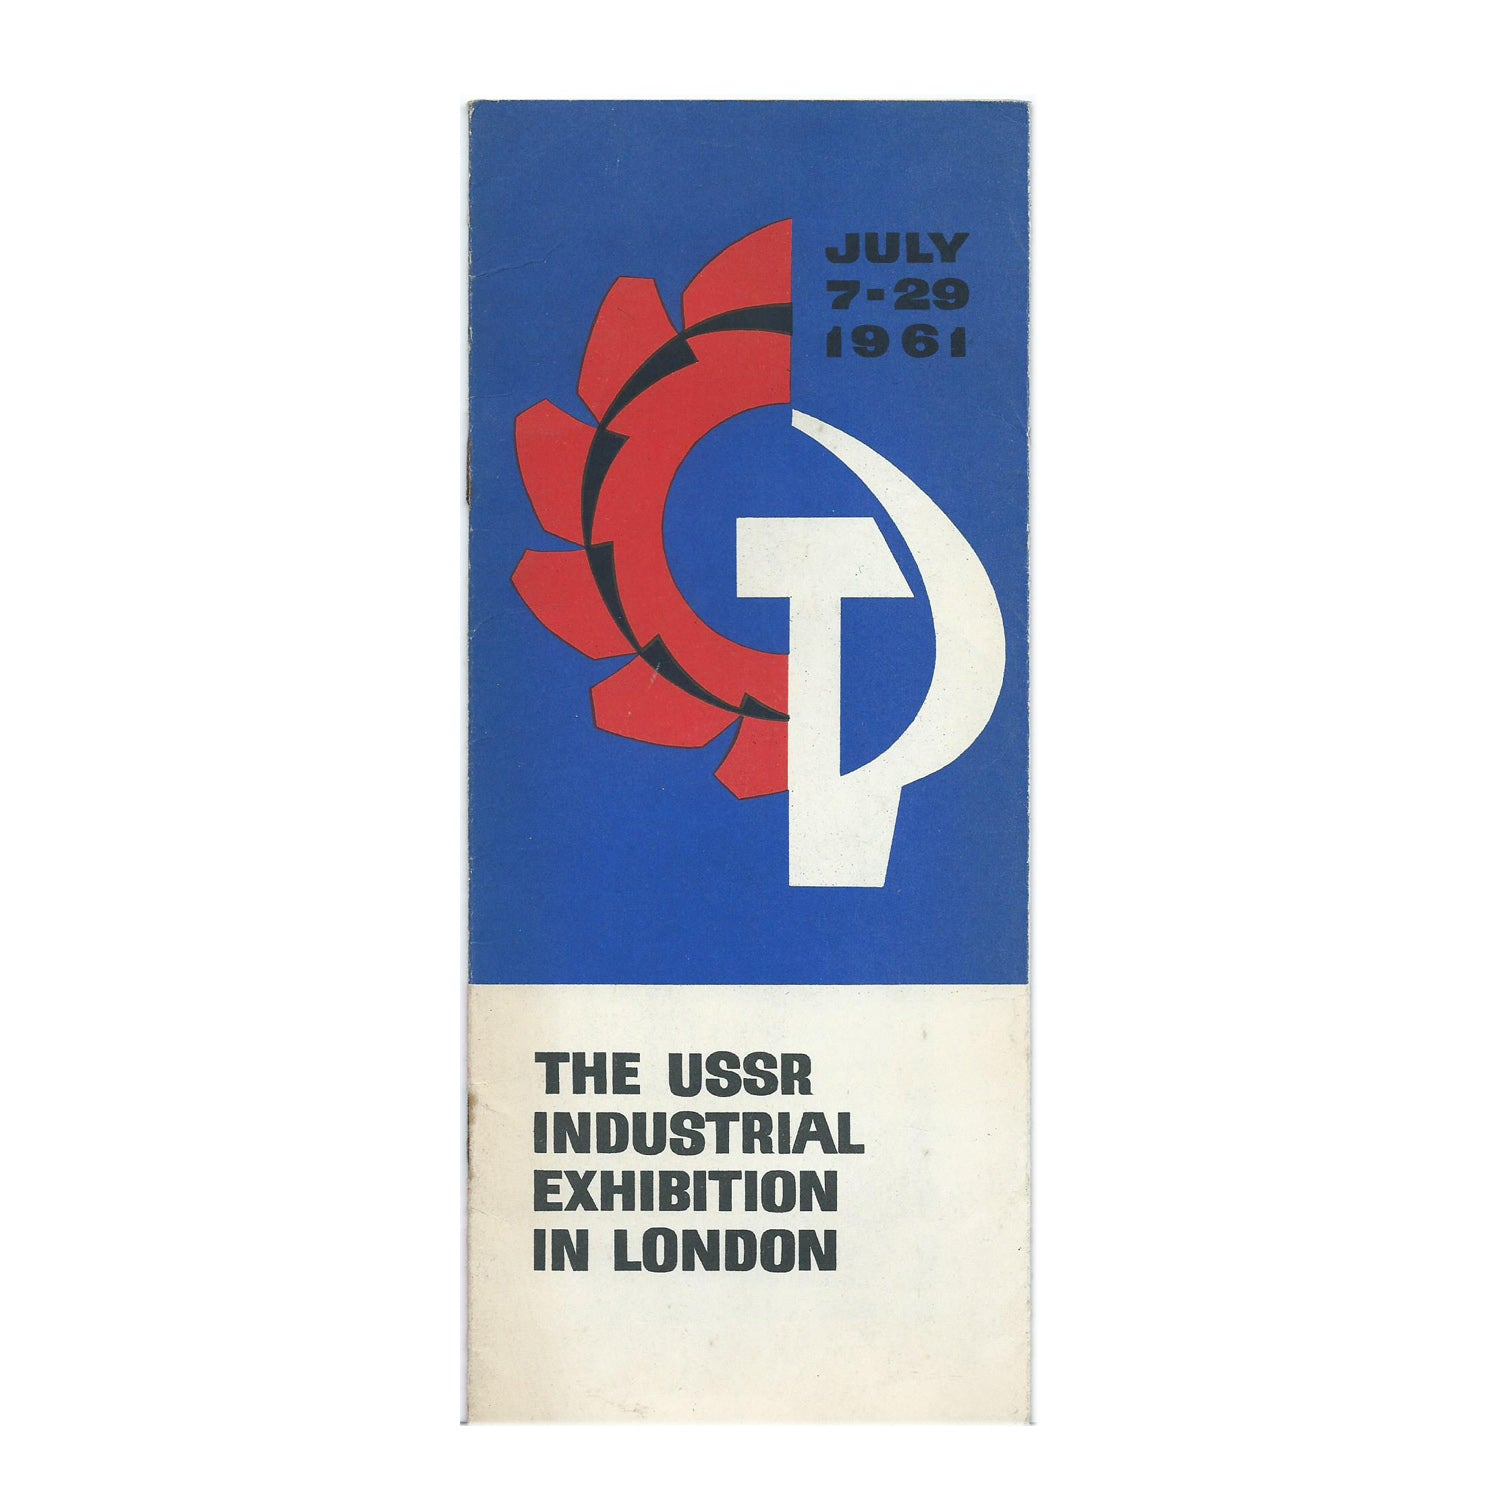 The USSR Industrial Exhibition in London (leaflet)